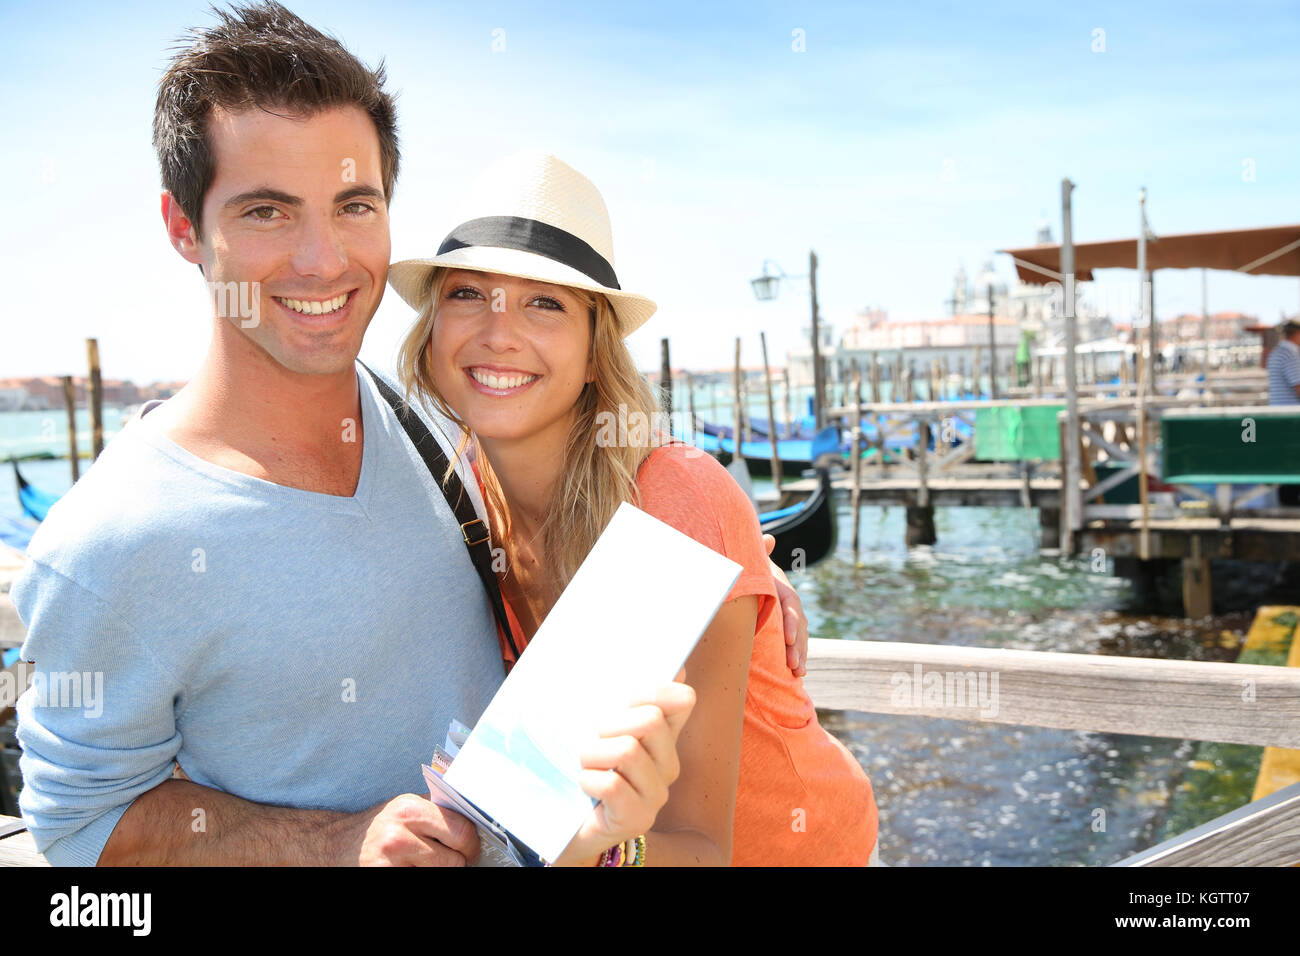 Cheerful couple in Venice showing tourist guide book - Stock Image